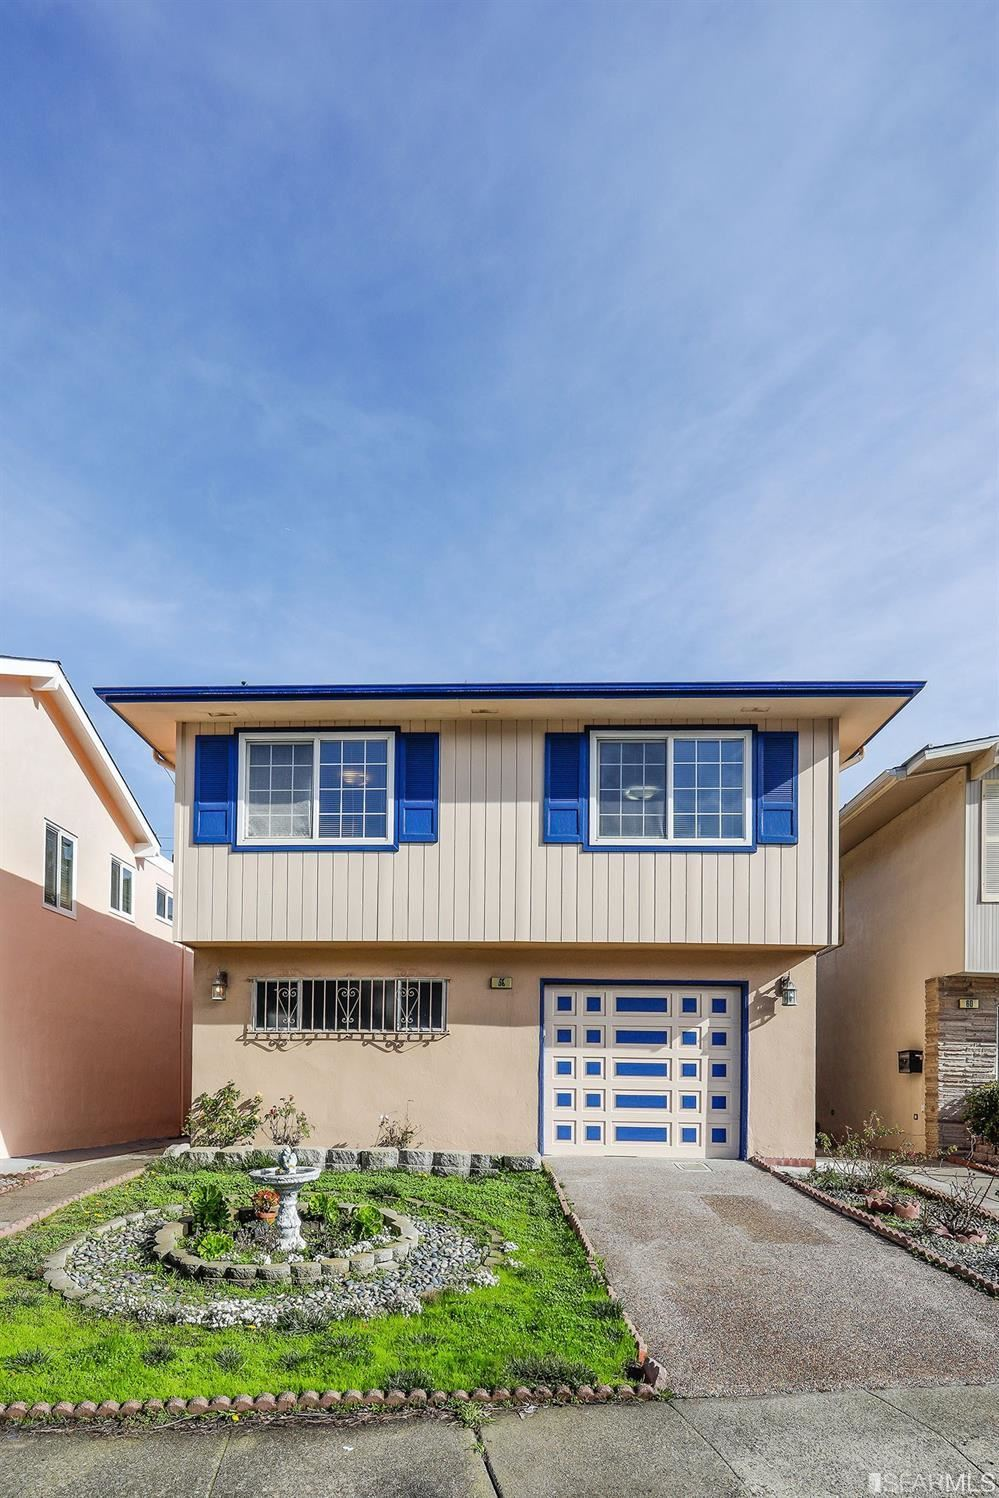 Property Image Of 66 Zita Manor In Daly City, Ca